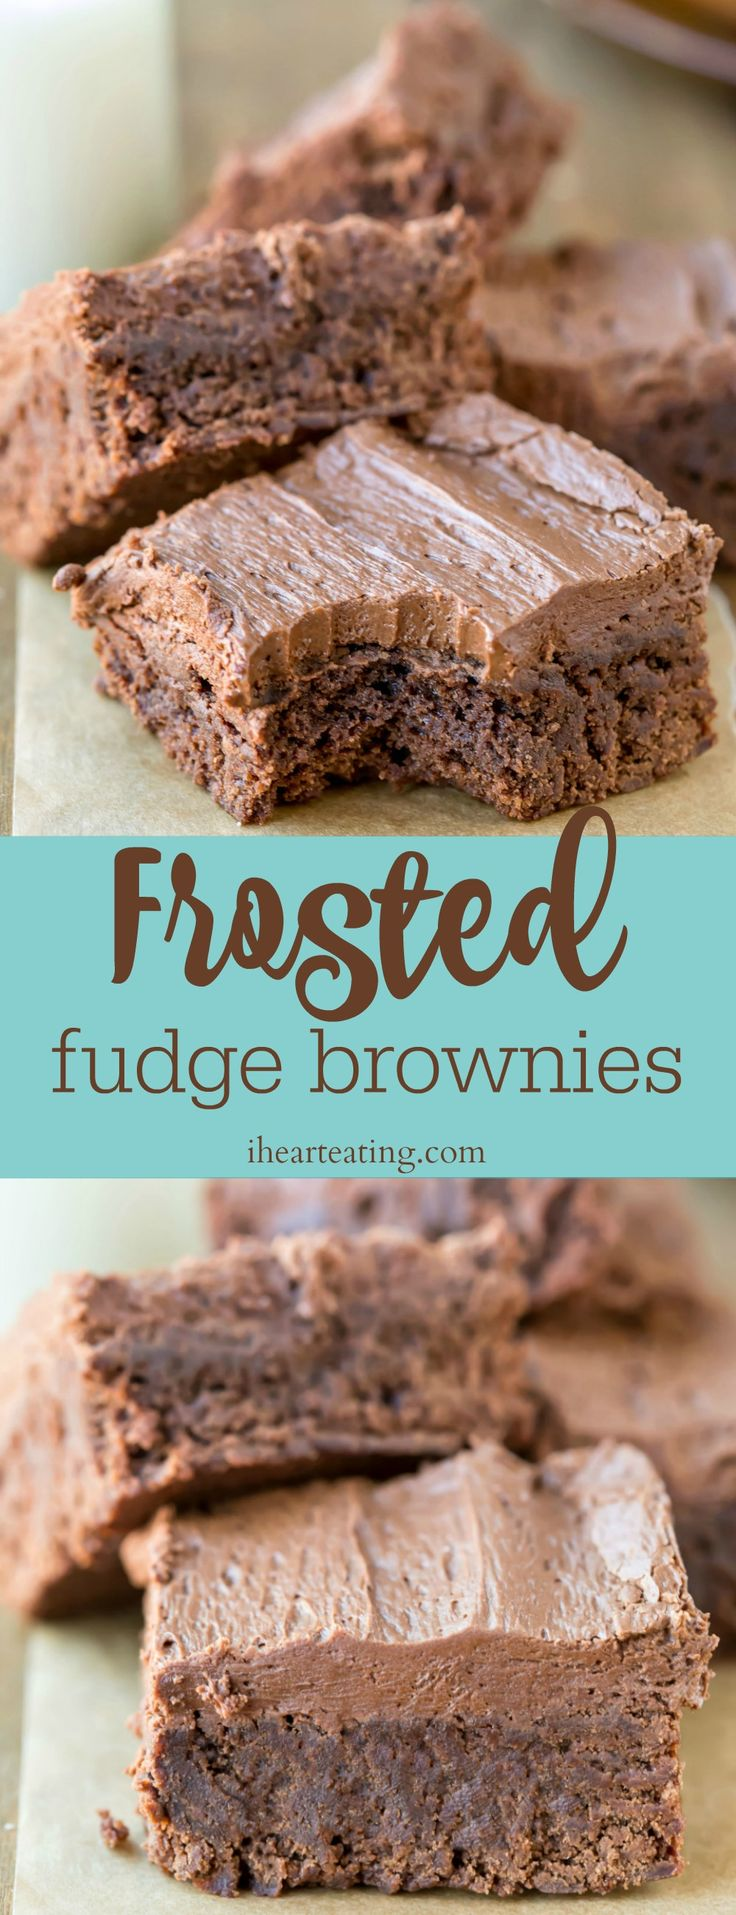 Frosted fudge brownies are chewy fudge brownies that are topped with rich chocolate buttercream frosting. The perfect brownie recipe!